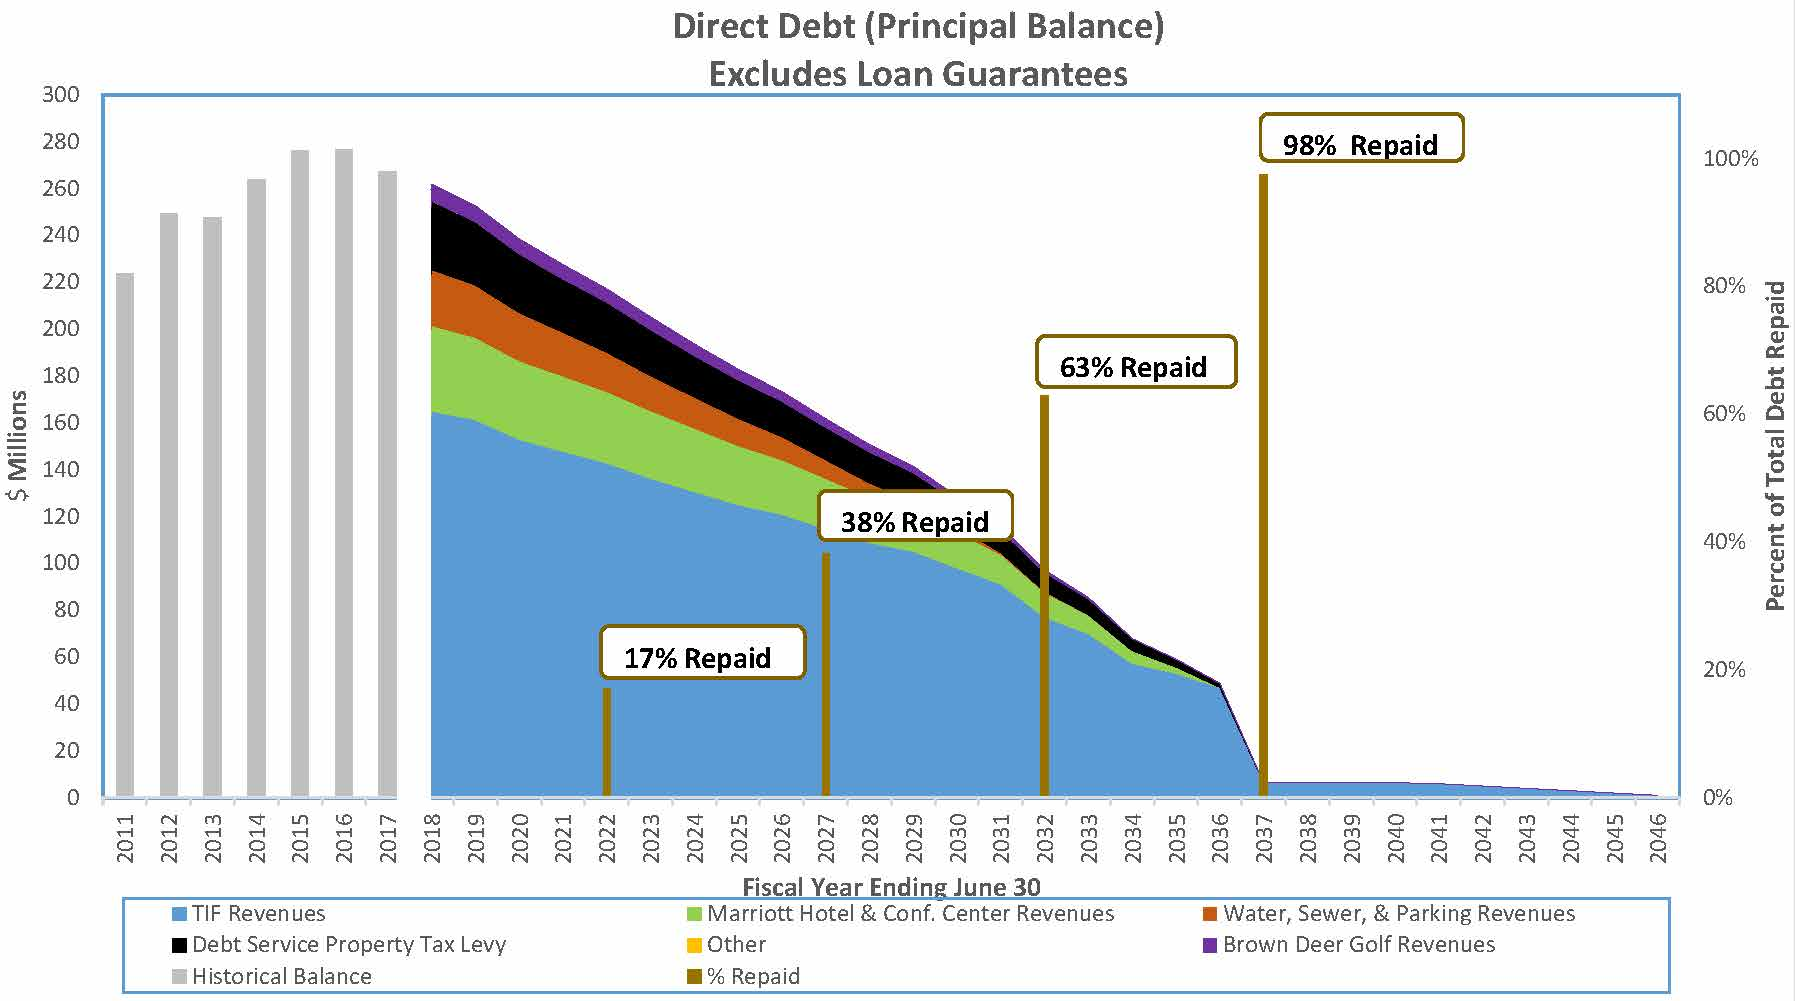 Coralville Oustanding Principal Balance of Deby by Repayment Source